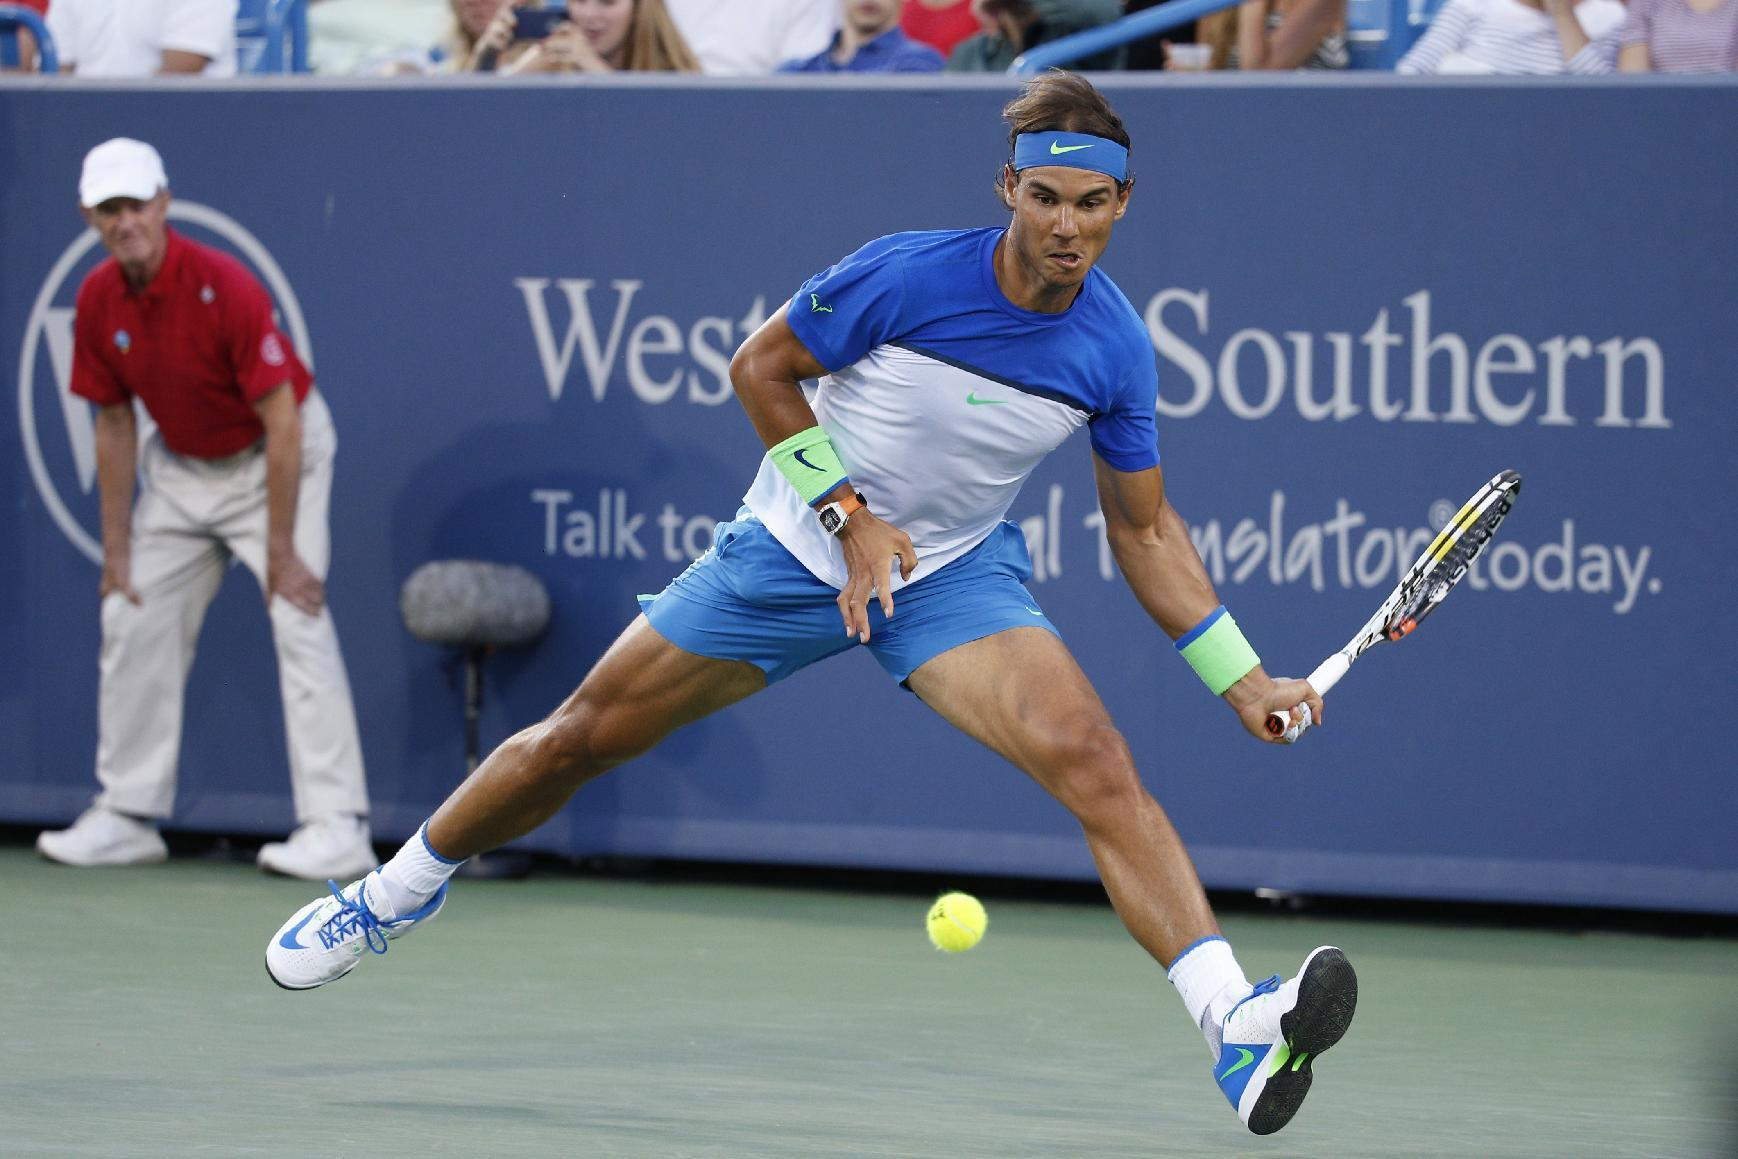 Nadal vows passionate return to U.S. Open